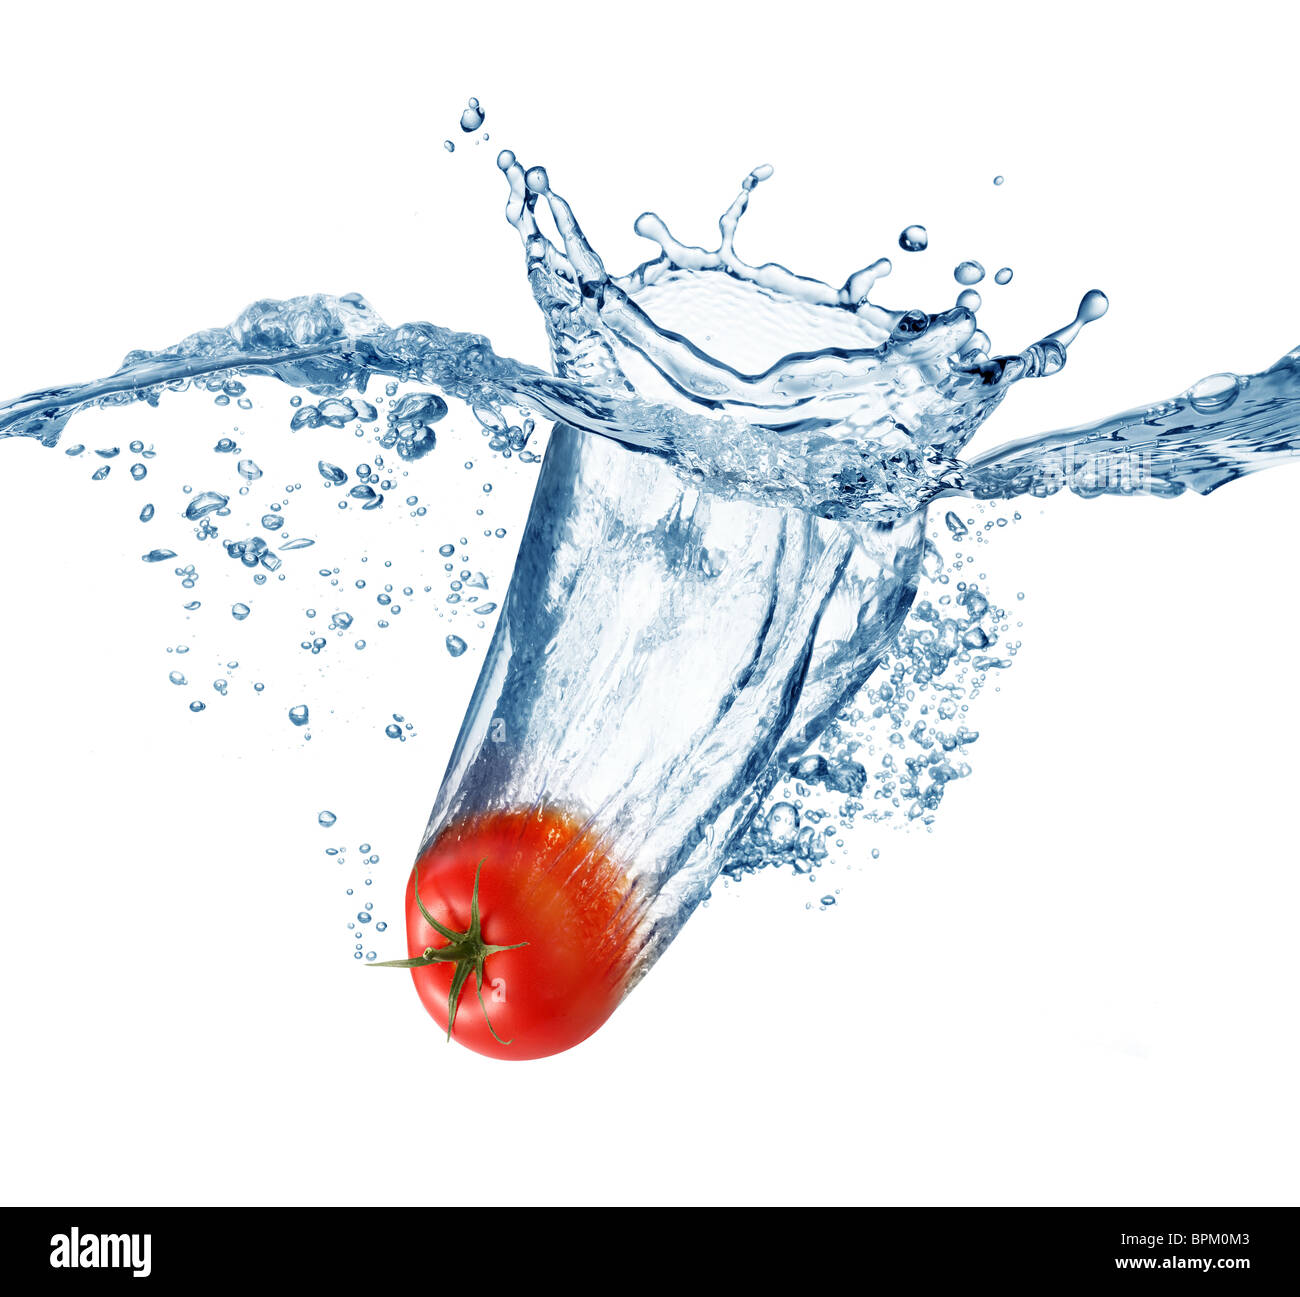 Ripe tomato falls deeply under water with a big splash. - Stock Image